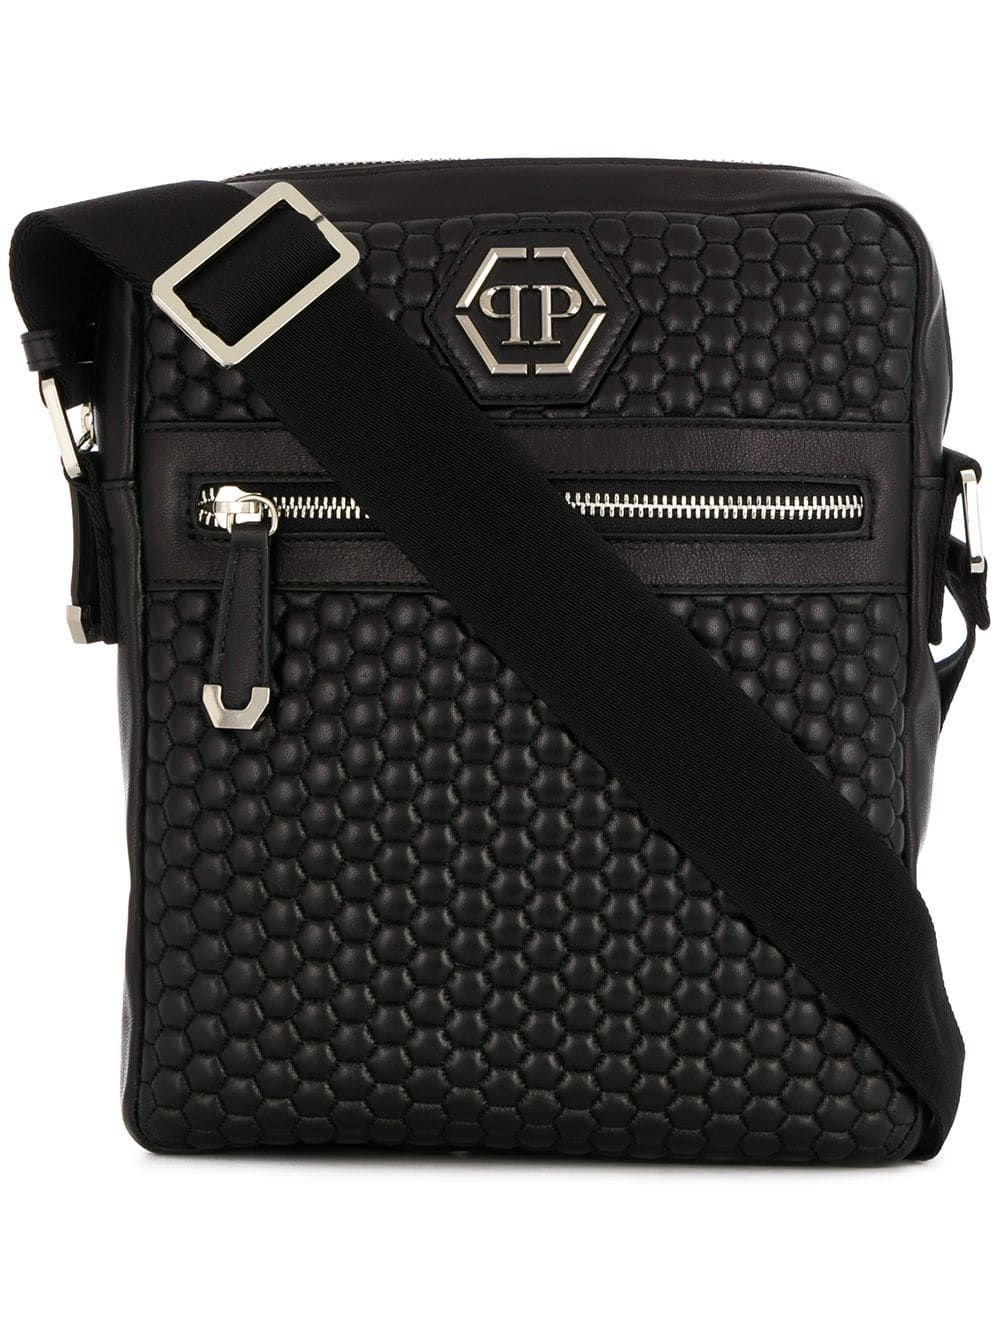 8a79341fa6fb PHILIPP PLEIN PHILIPP PLEIN QUILTED MESSENGER BAG - BLACK.  philippplein   bags  shoulder bags  leather  lining